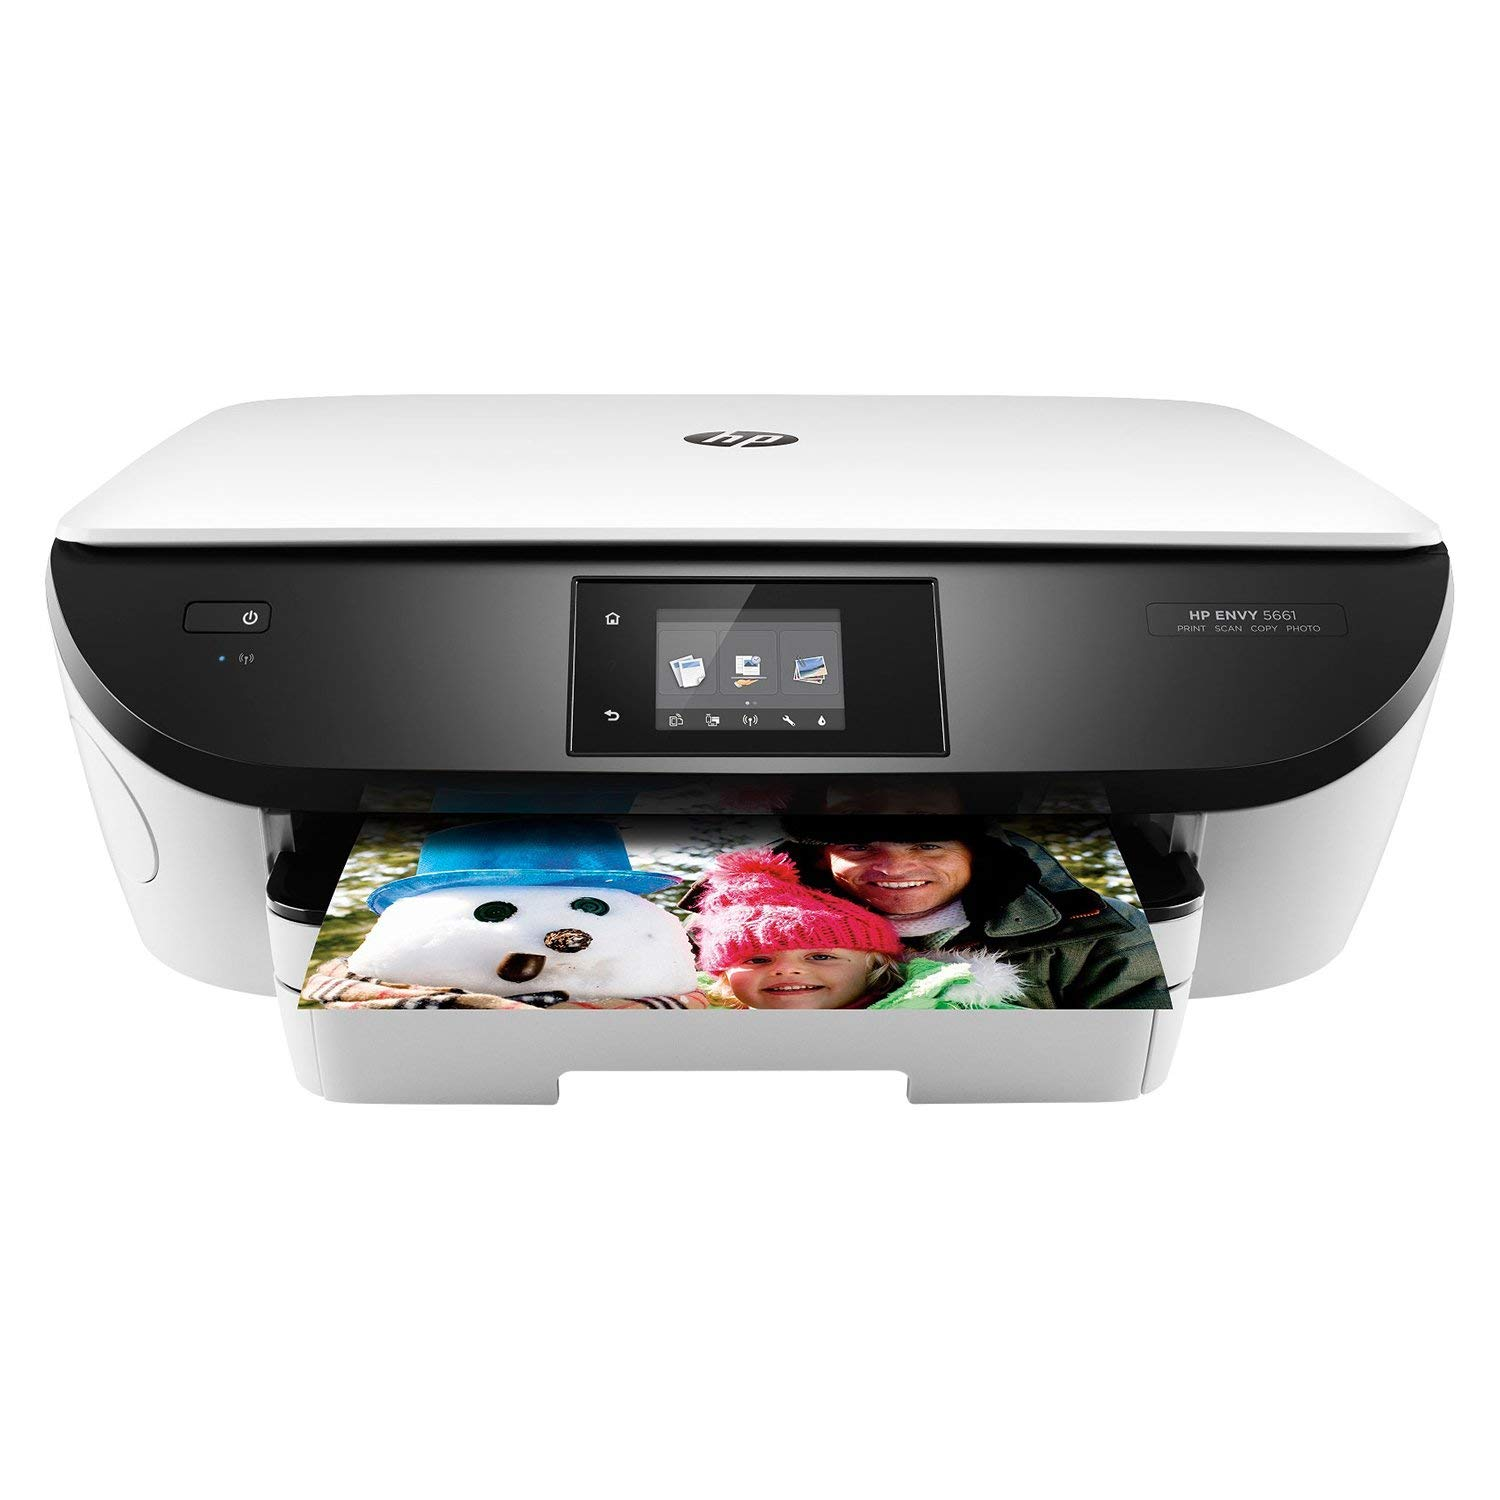 Hp psc 2355 all-in-one printer drivers for windows 10, 8, 7, vista.